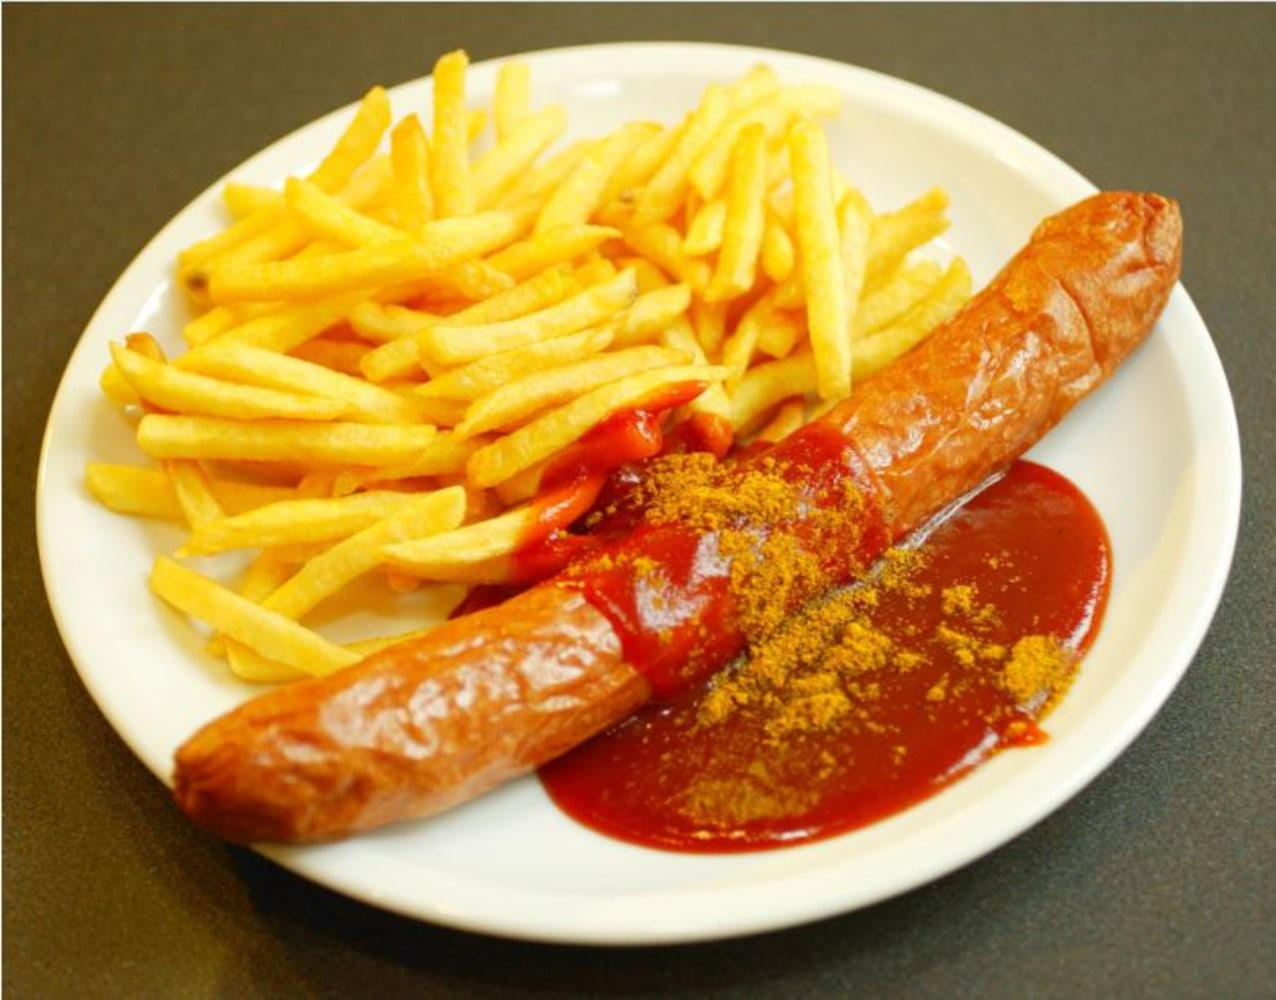 volkswagen sold more currywurst than cars in 2015 nbc news. Black Bedroom Furniture Sets. Home Design Ideas